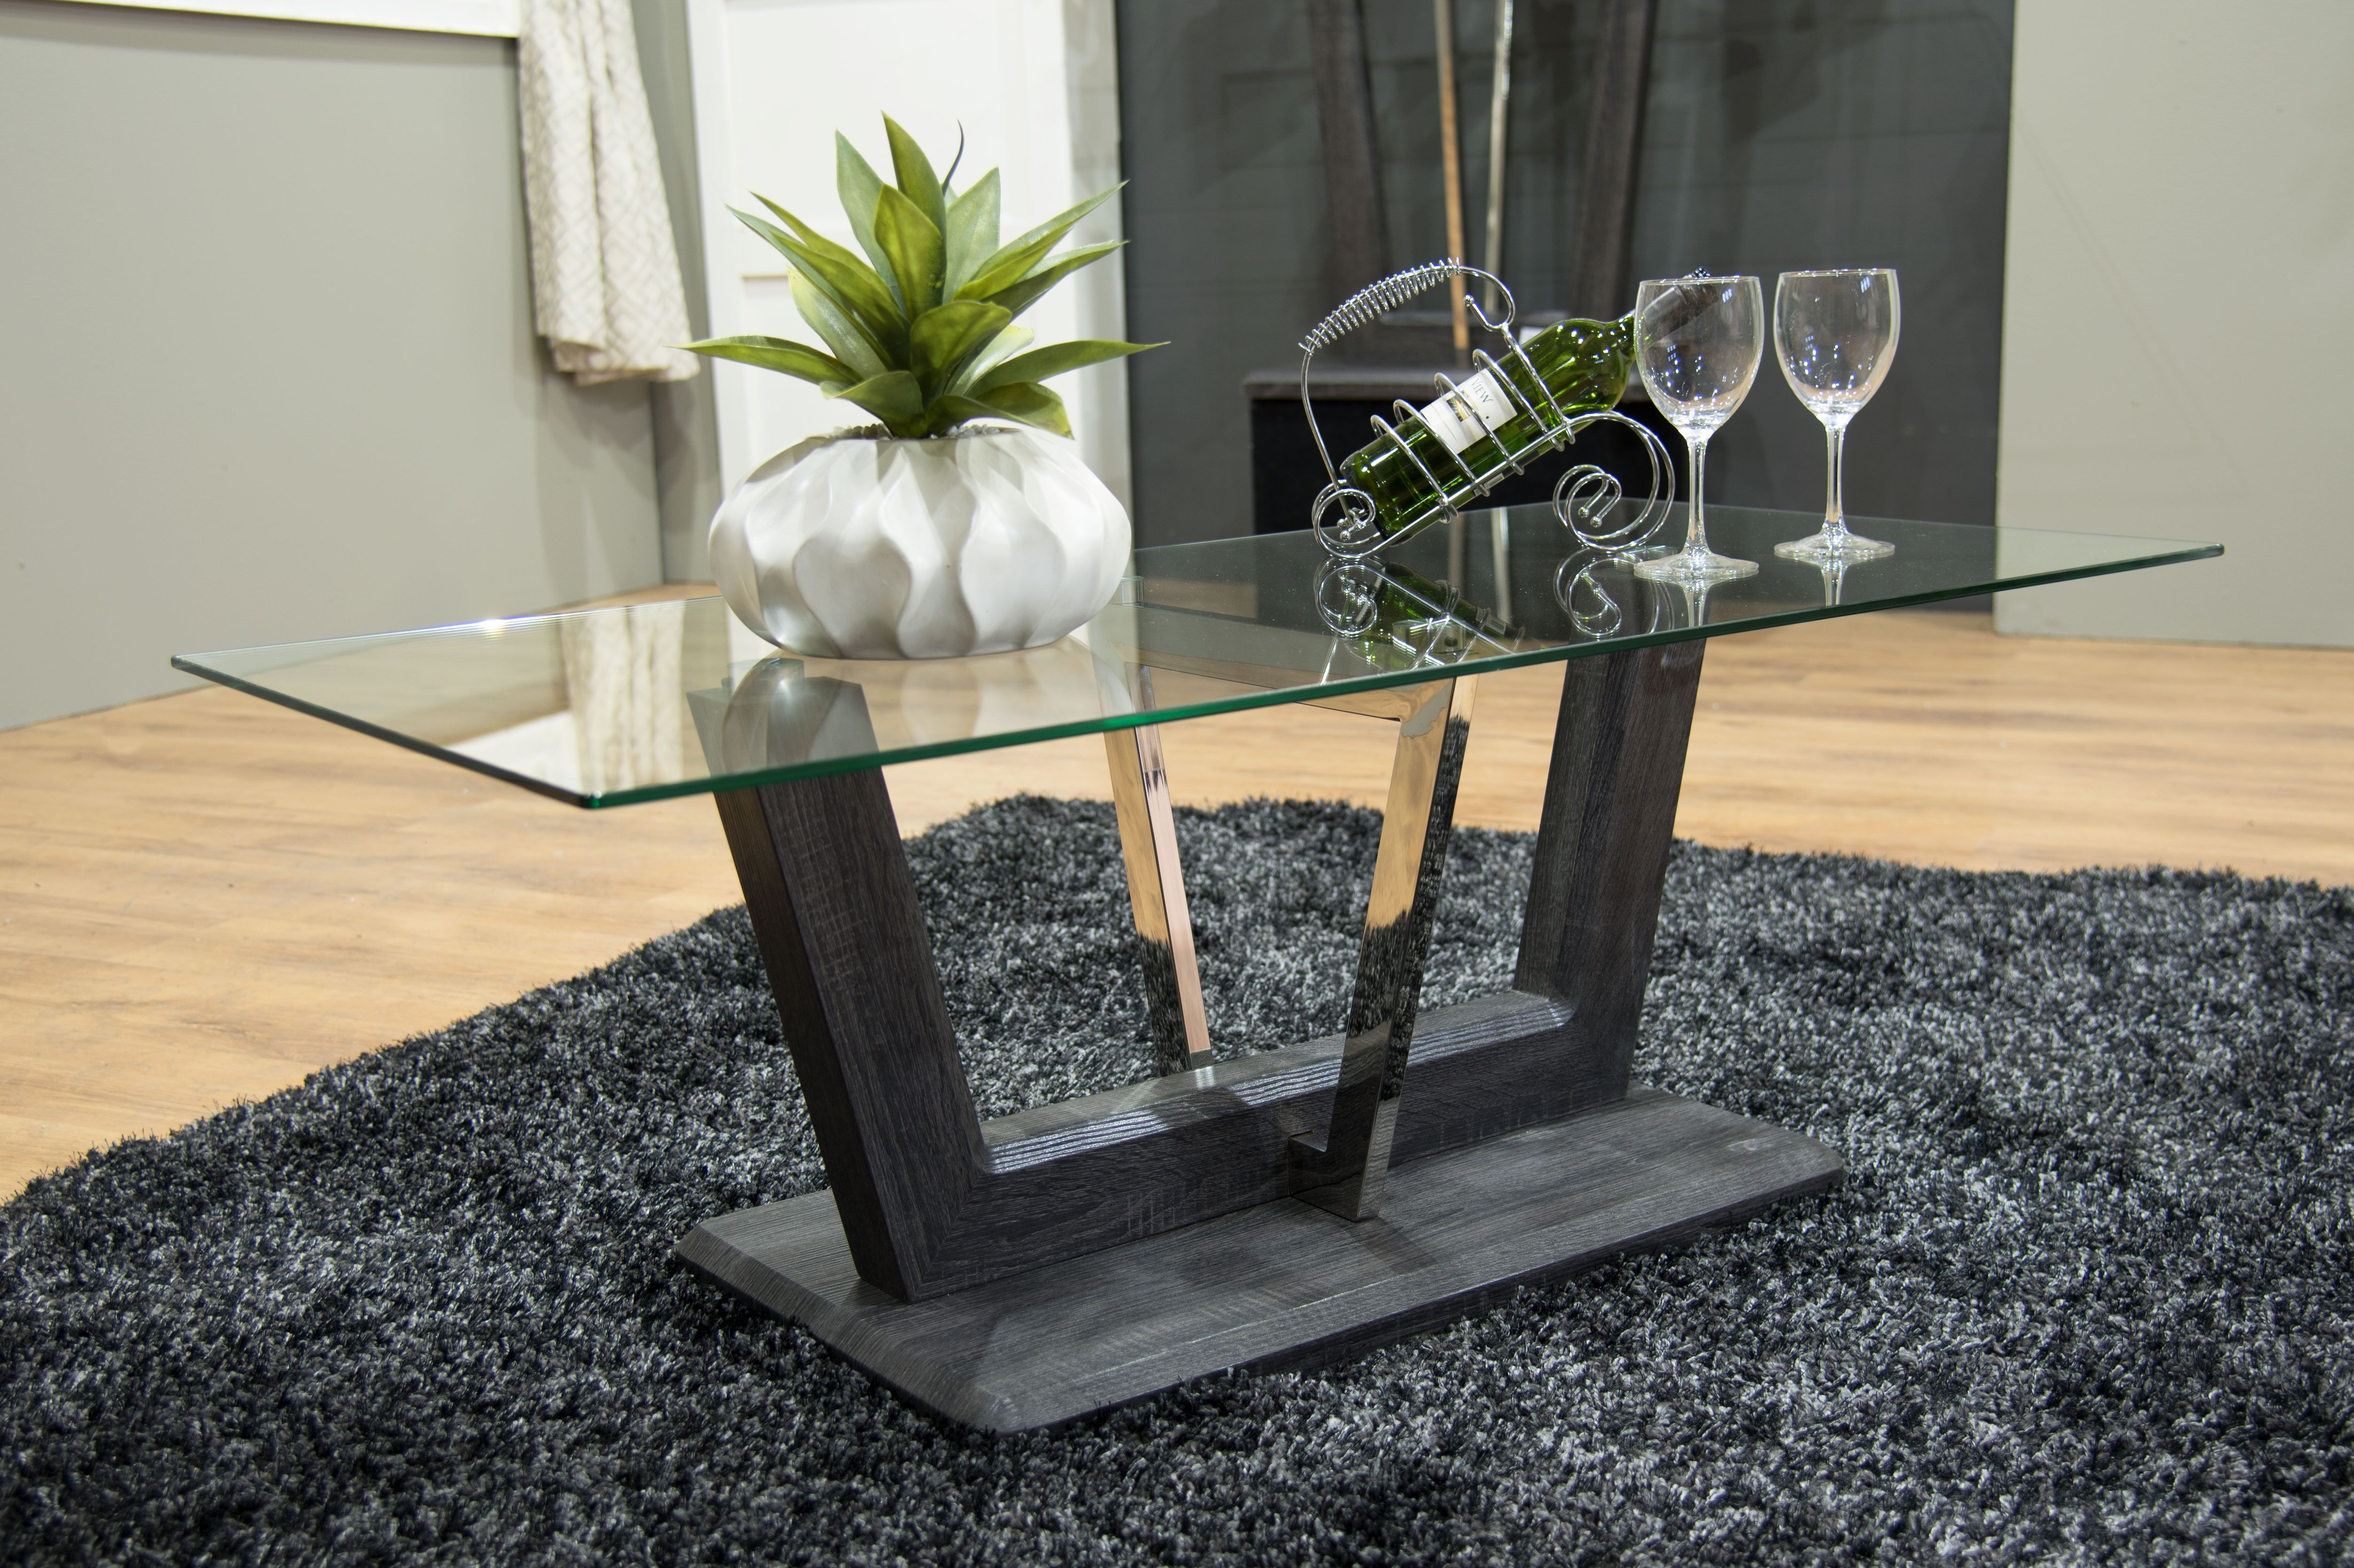 Remarkable Vee Coffee Table By Discount Decor Contact Us 011 616 2026 Machost Co Dining Chair Design Ideas Machostcouk